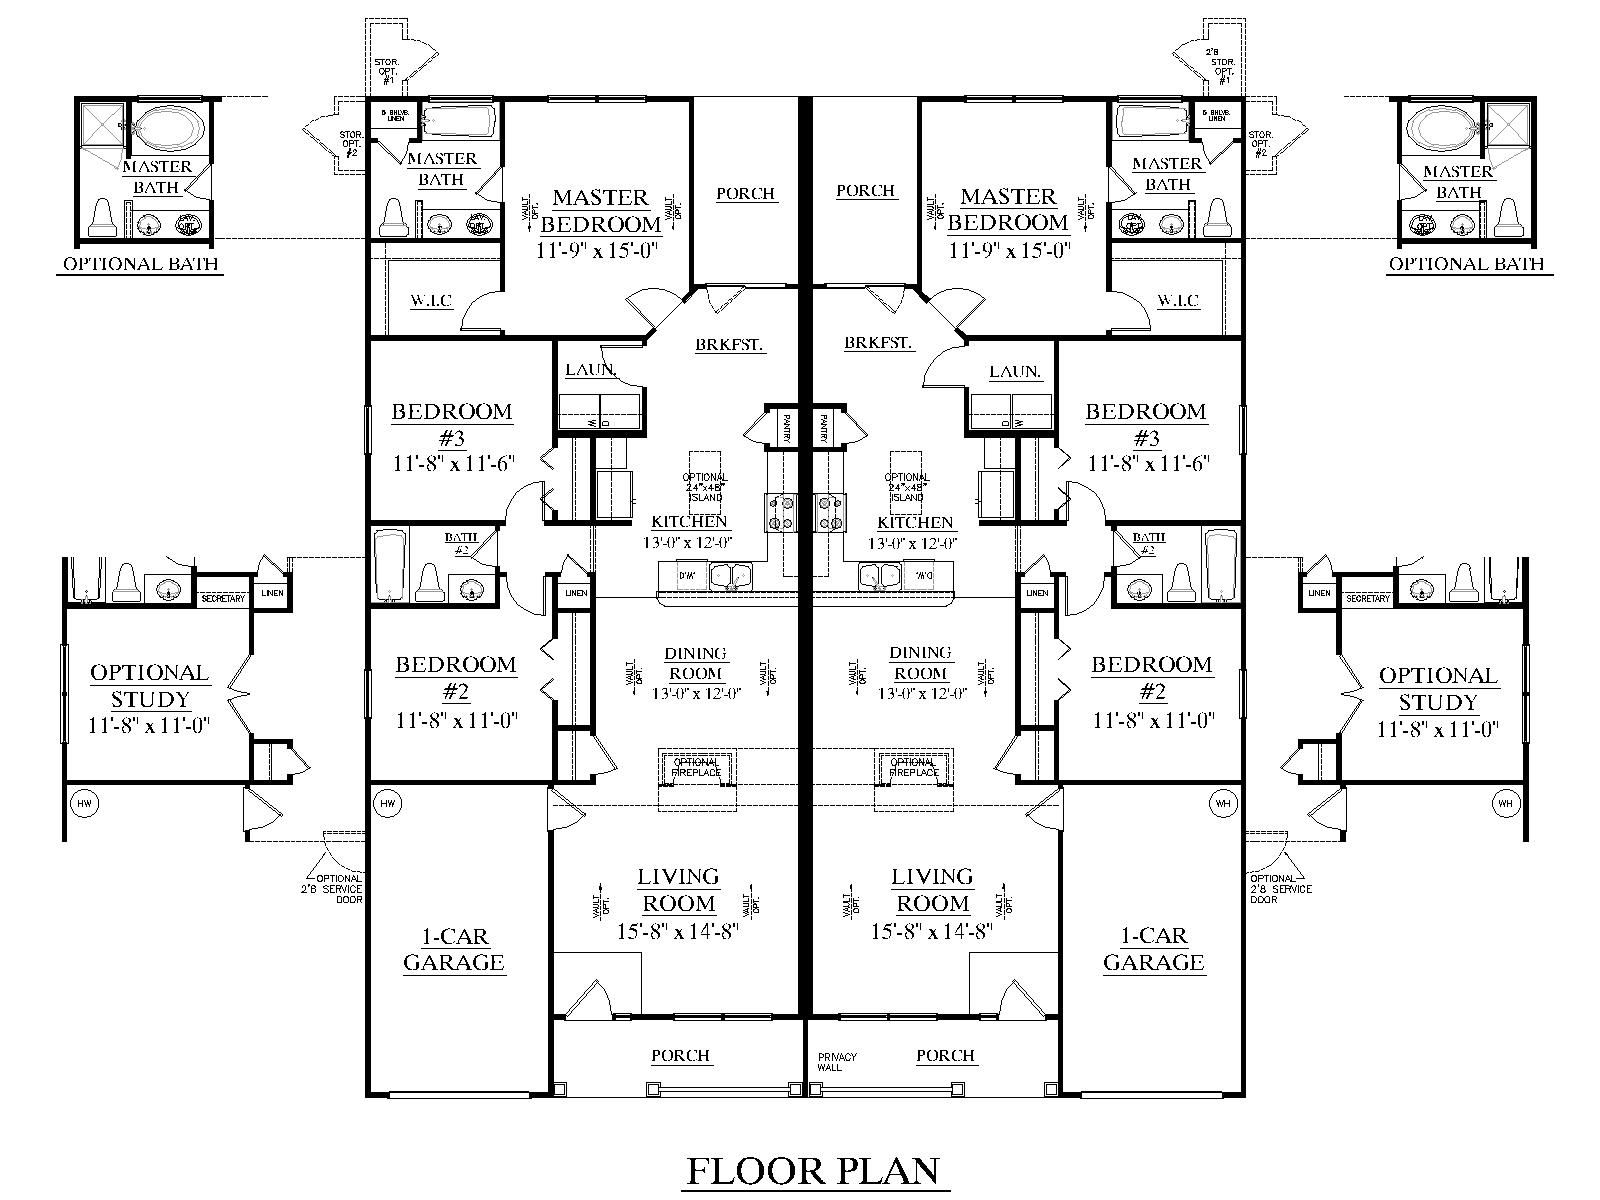 Southern Heritage Home Designs Duplex Plan 1392 A Duplex Floor Plans Duplex Plans Duplex House Plans